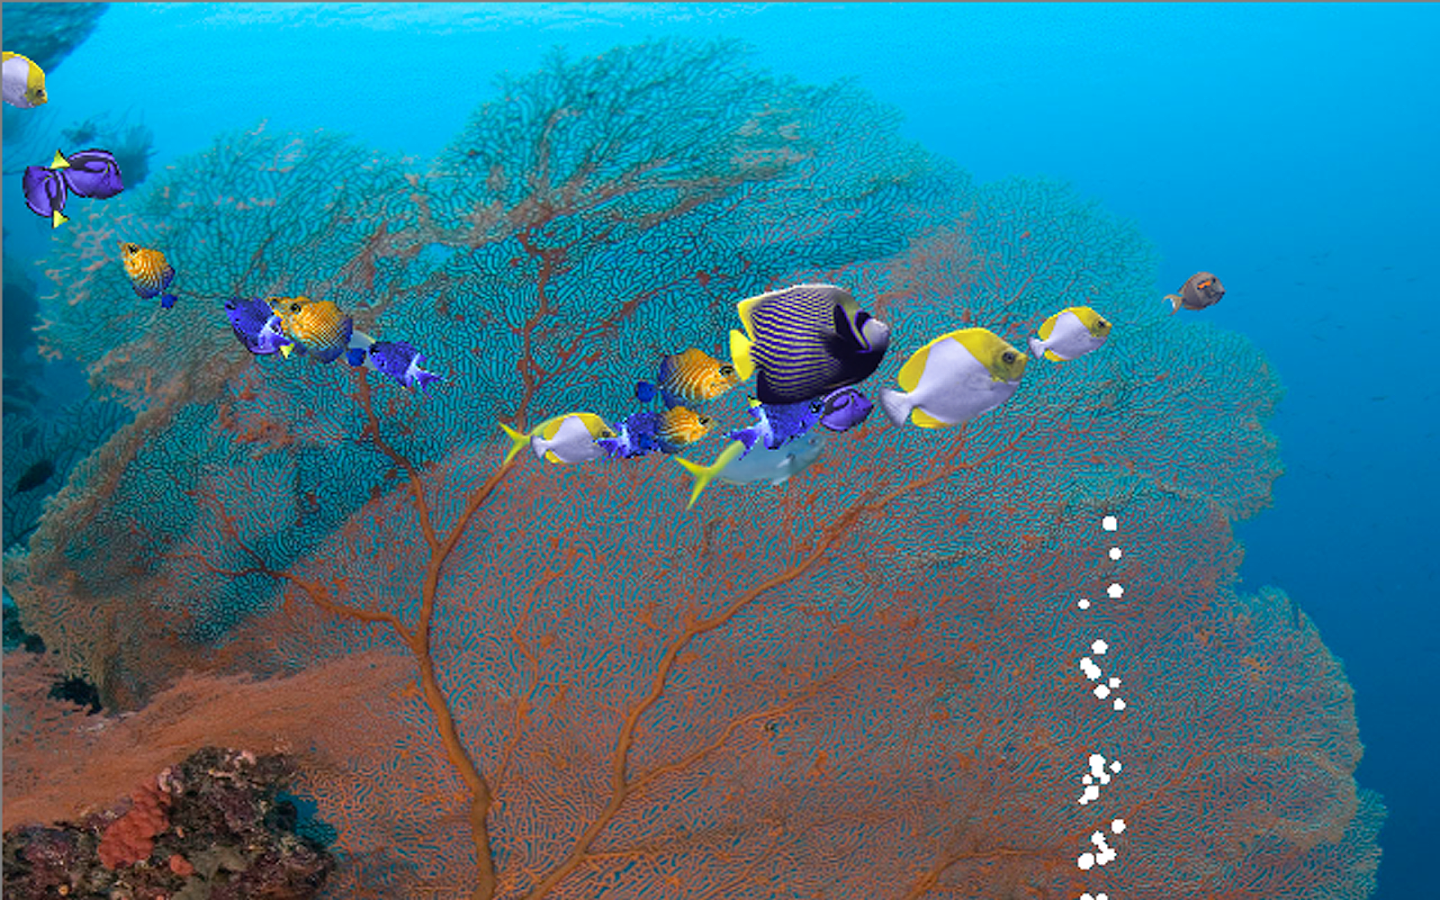 Fishies school of fish android apps on google play for School of fish